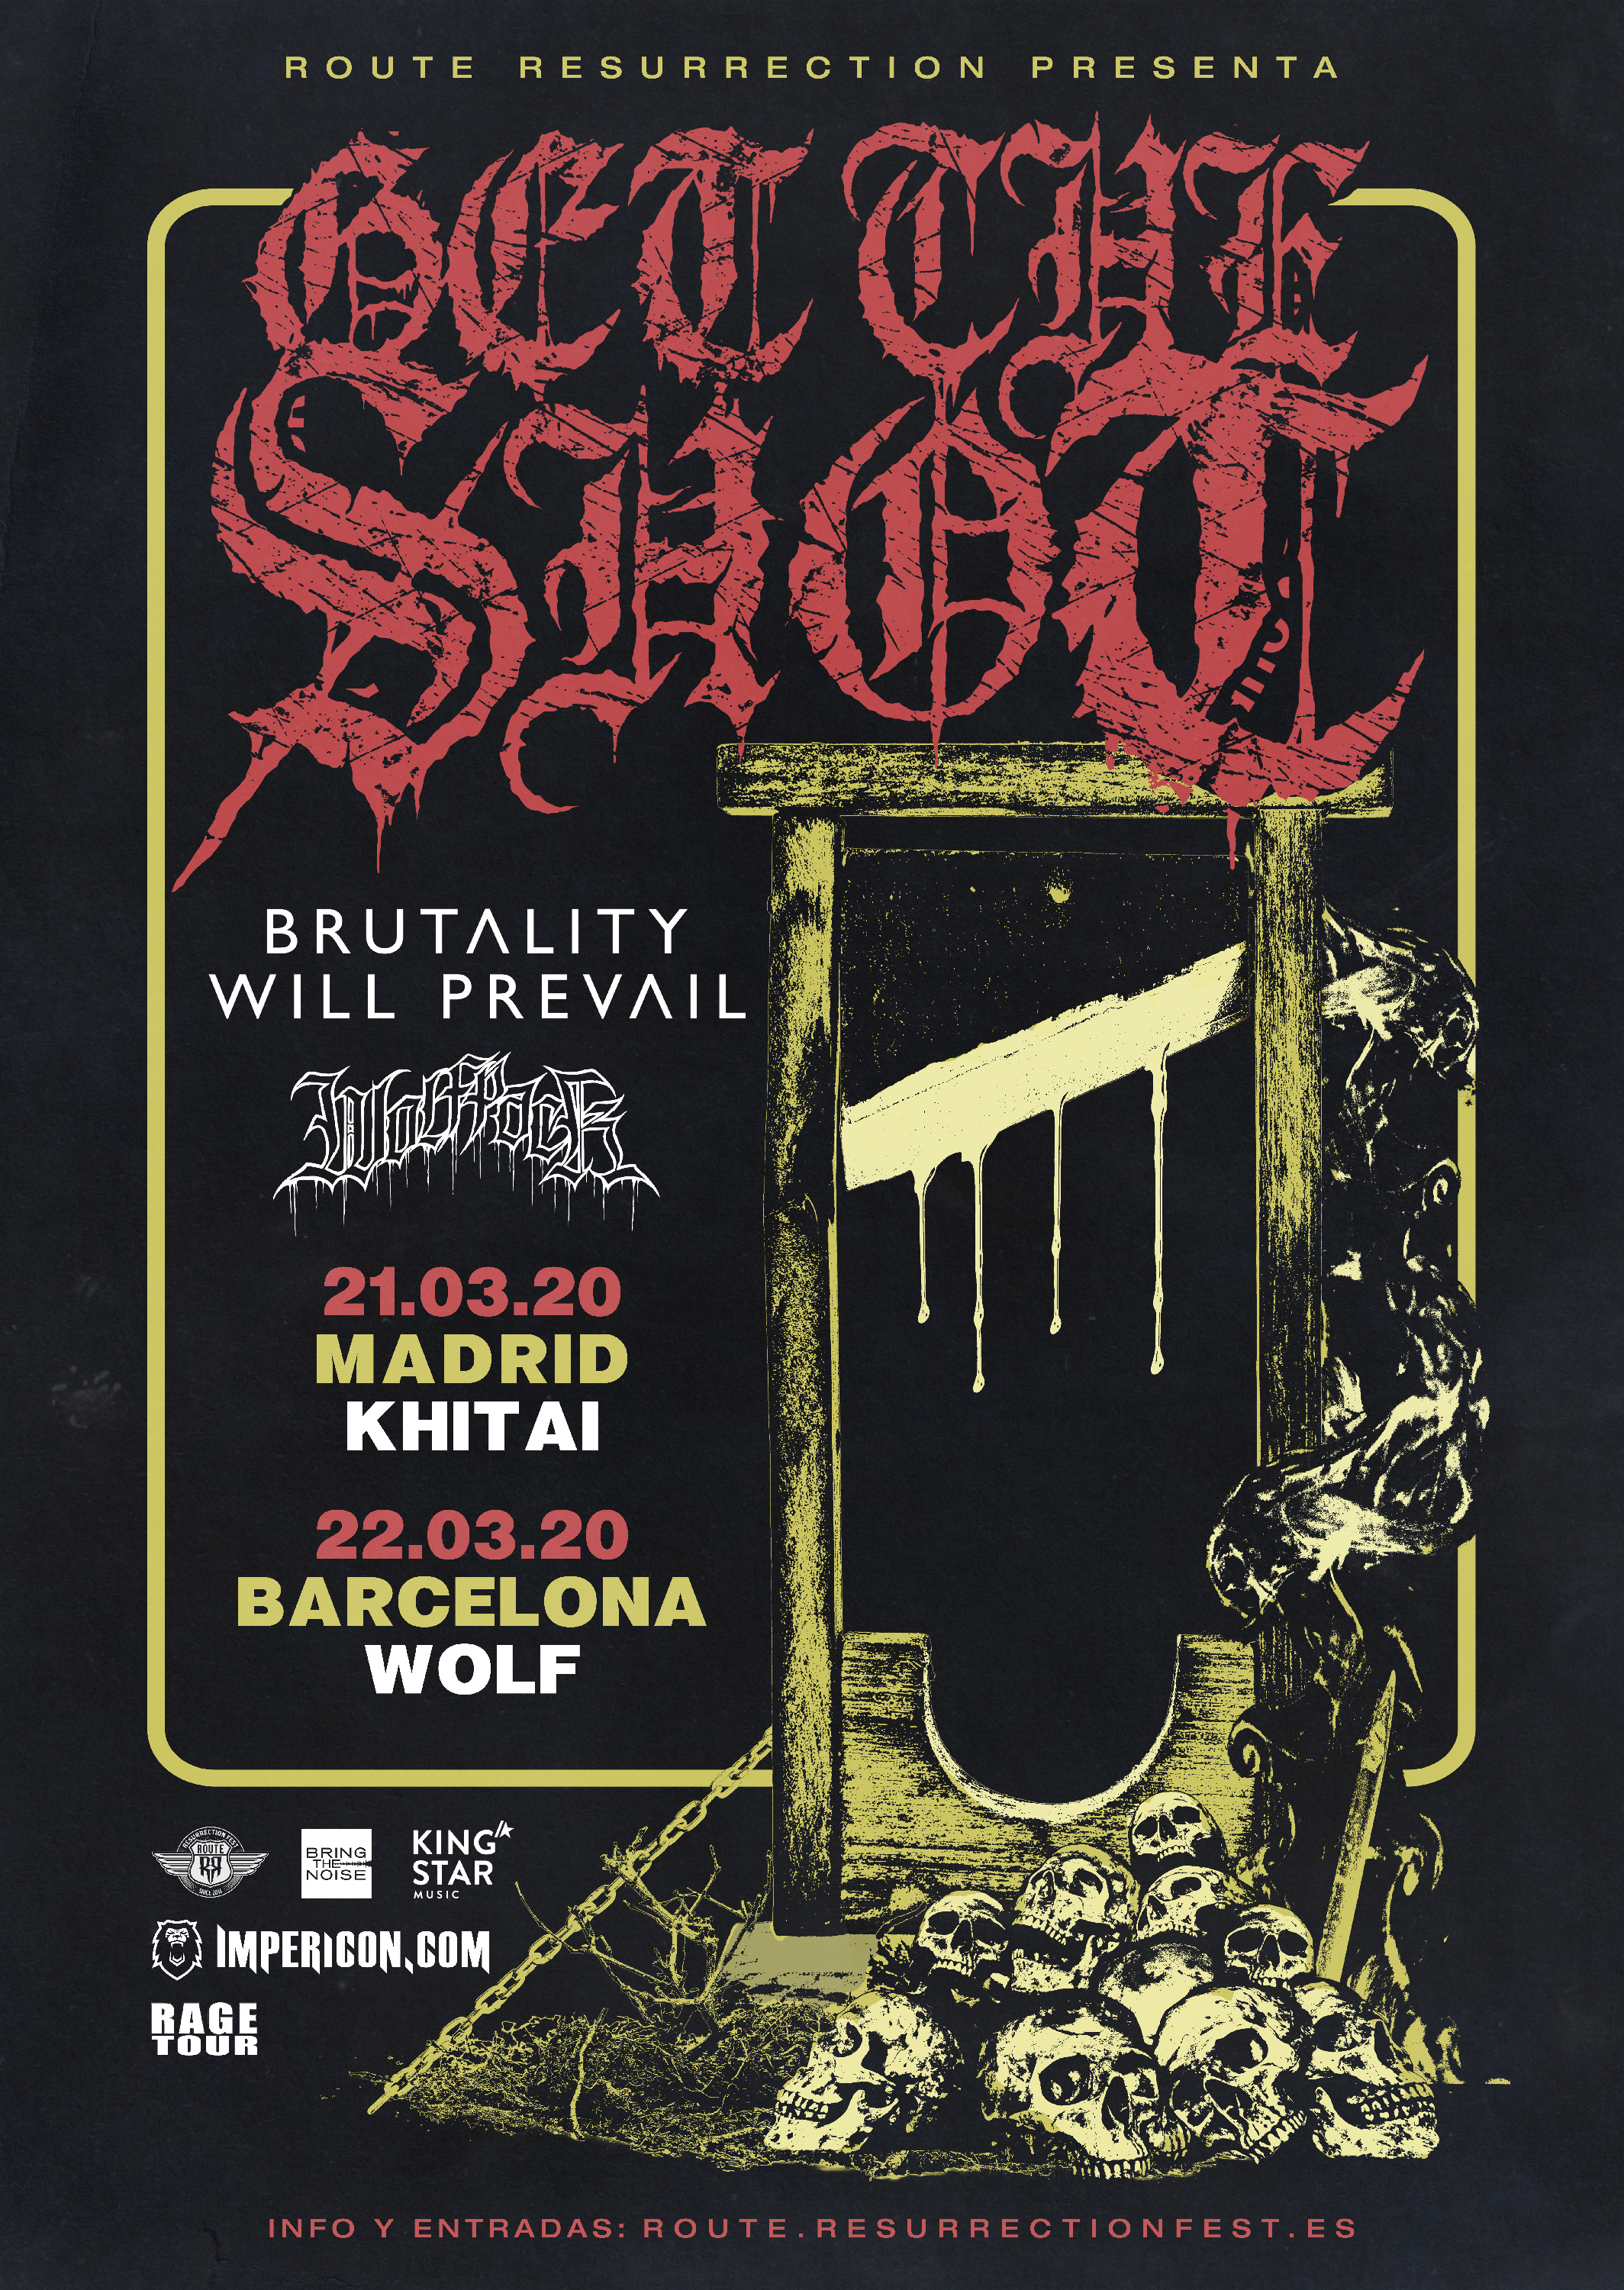 Route Resurrection 2020: Get The Shot (Madrid)